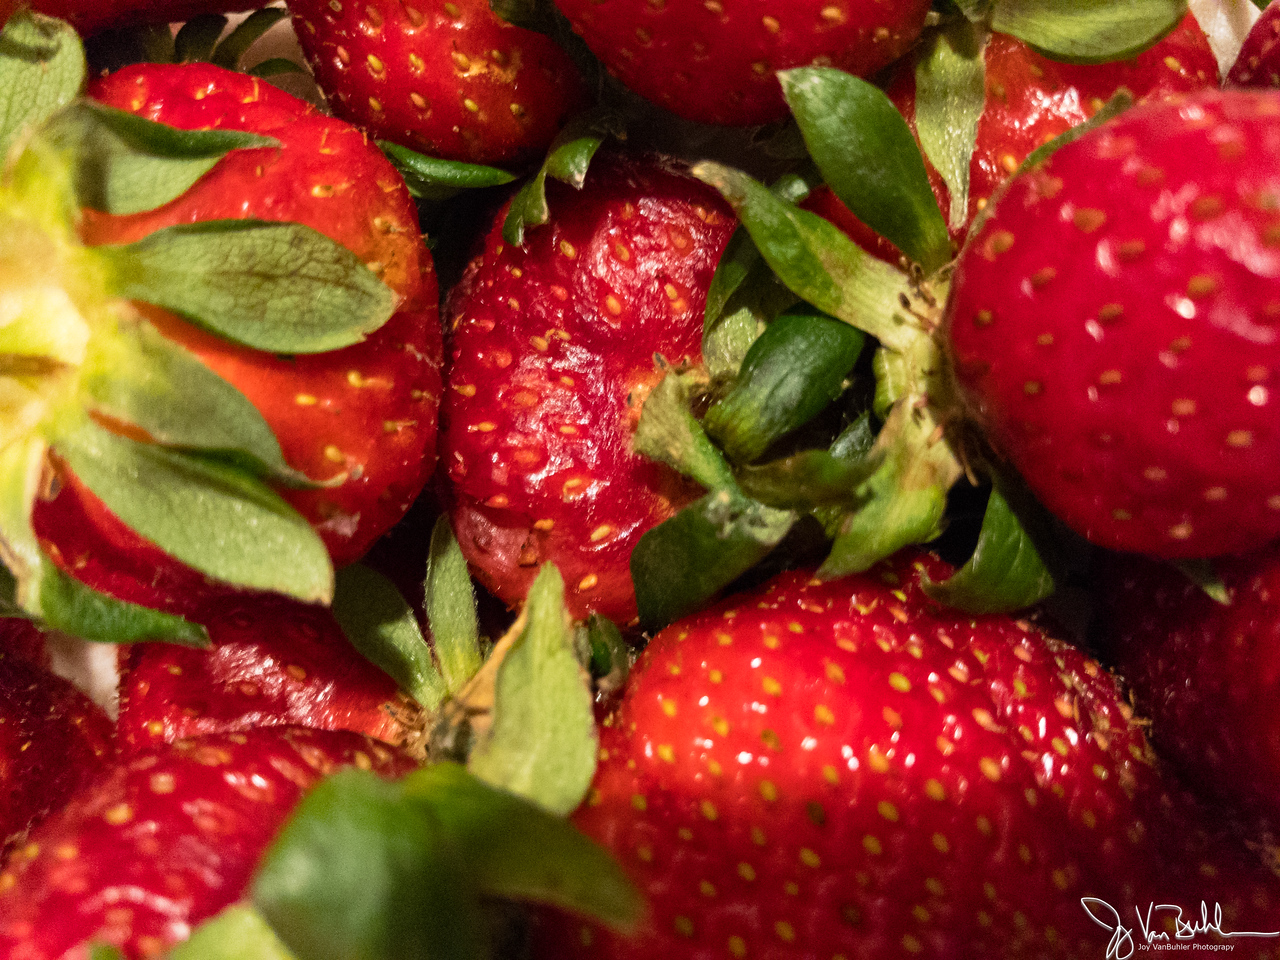 74/365 - Strawberries